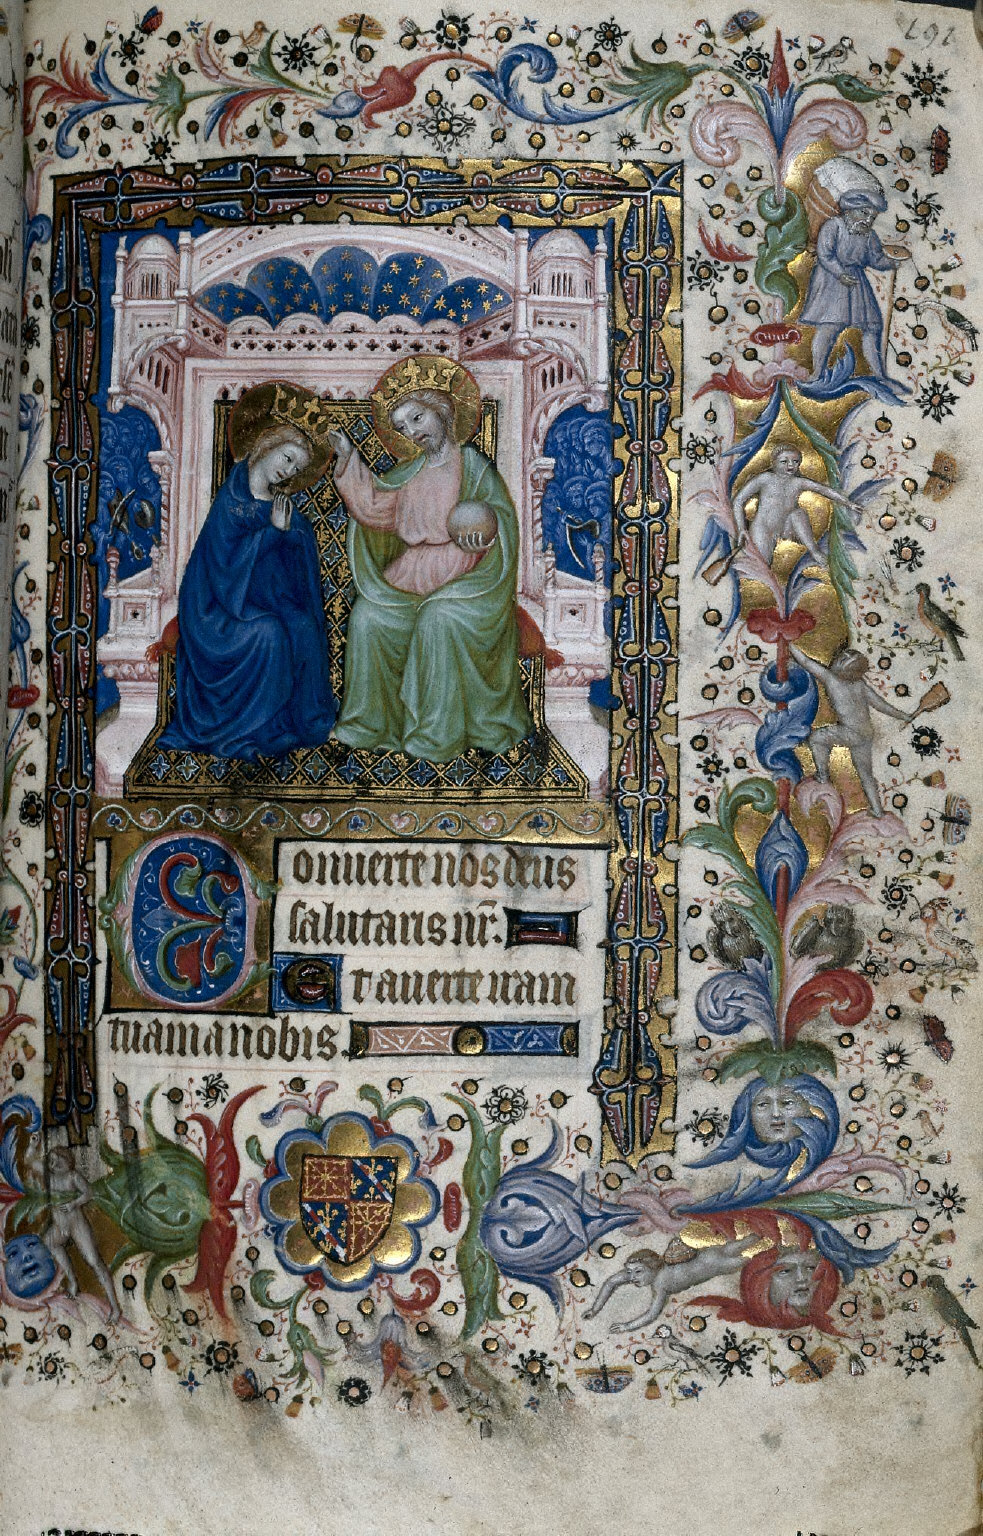 Hours of Charles the Noble, King of Navarre (1361-1425): Coronation of the Virgin (Compline), fol. 96 (recto)